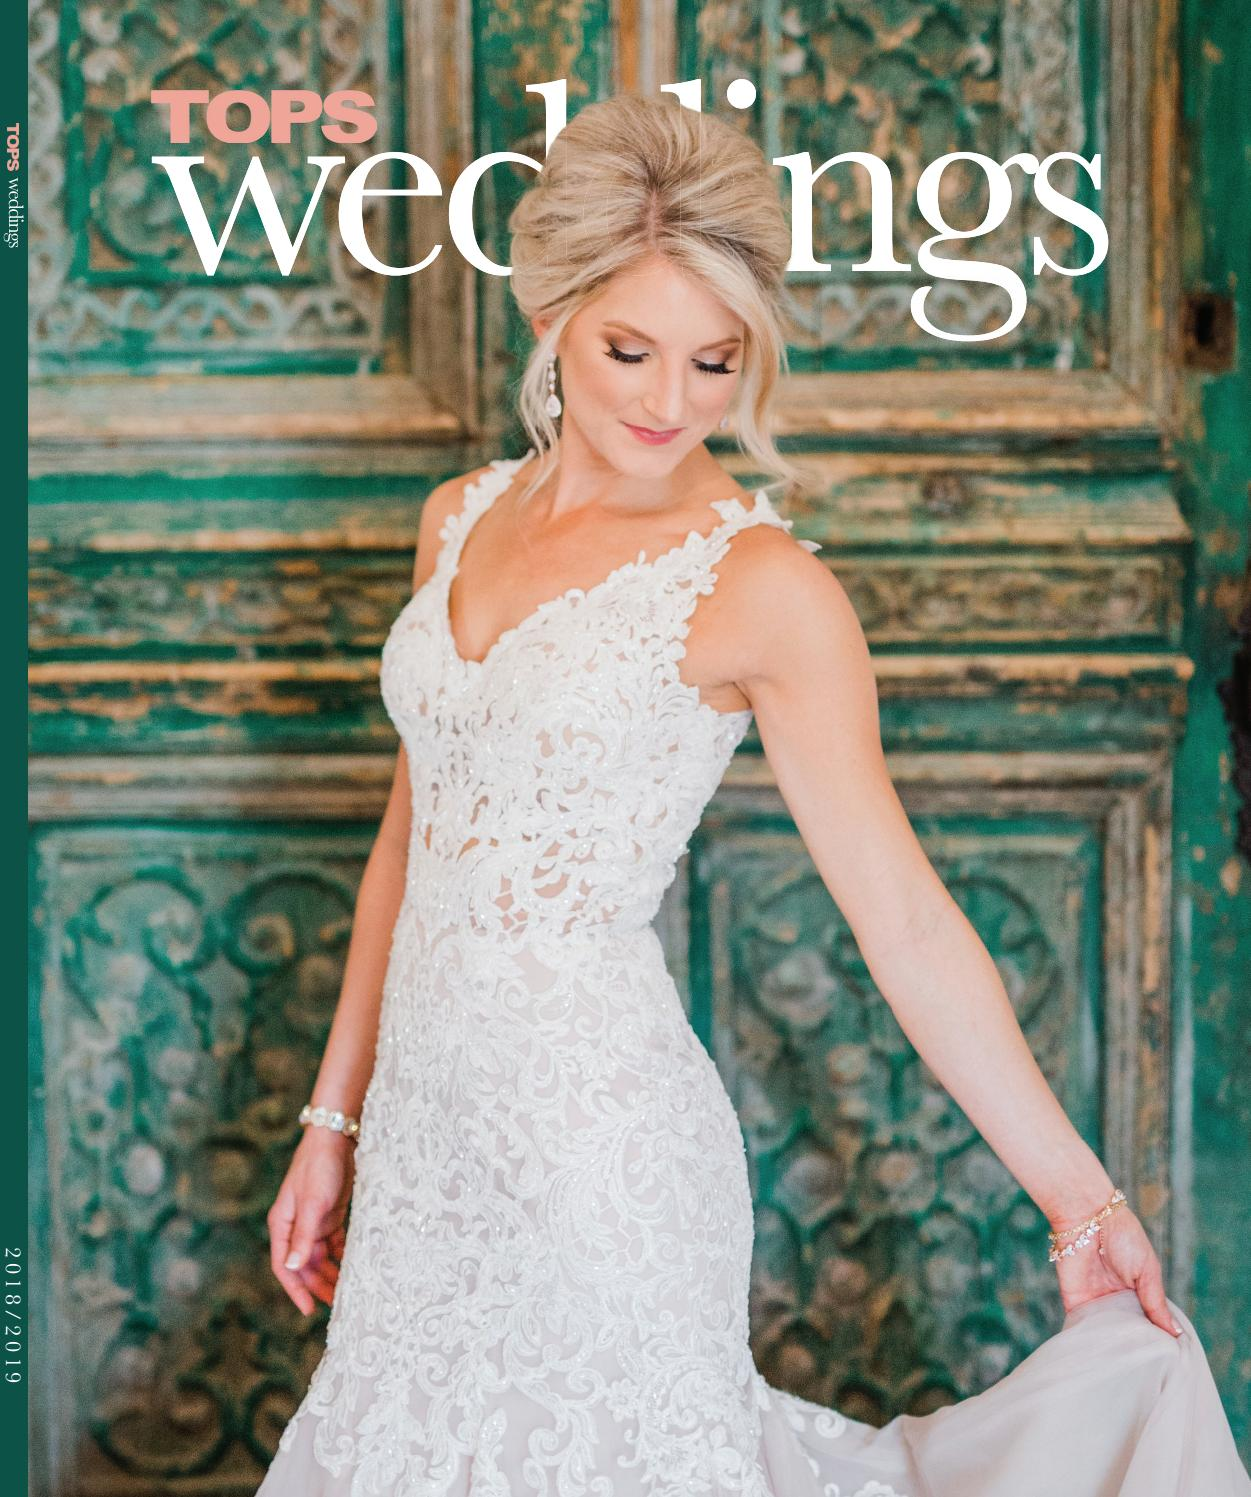 e4e673a420da3 TOPS Weddings 2018 by TOPS Magazine - issuu